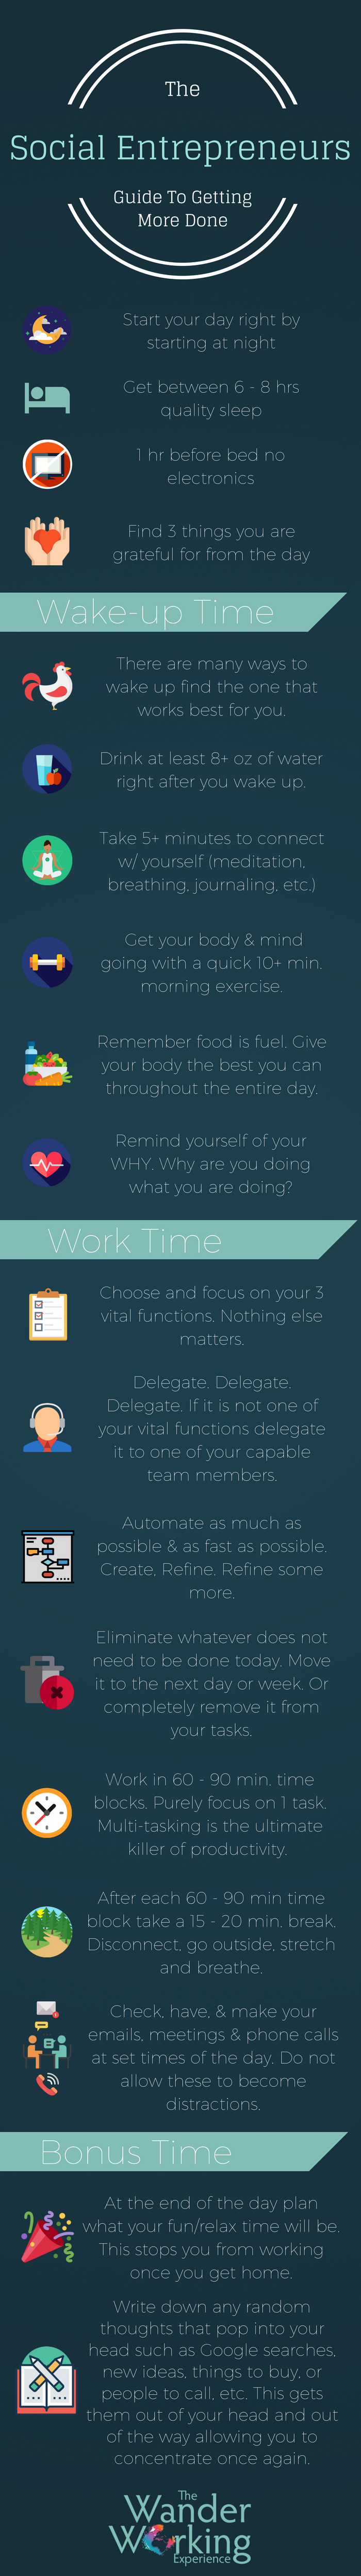 Social Entrepreneurs Guide to Getting More Done.png